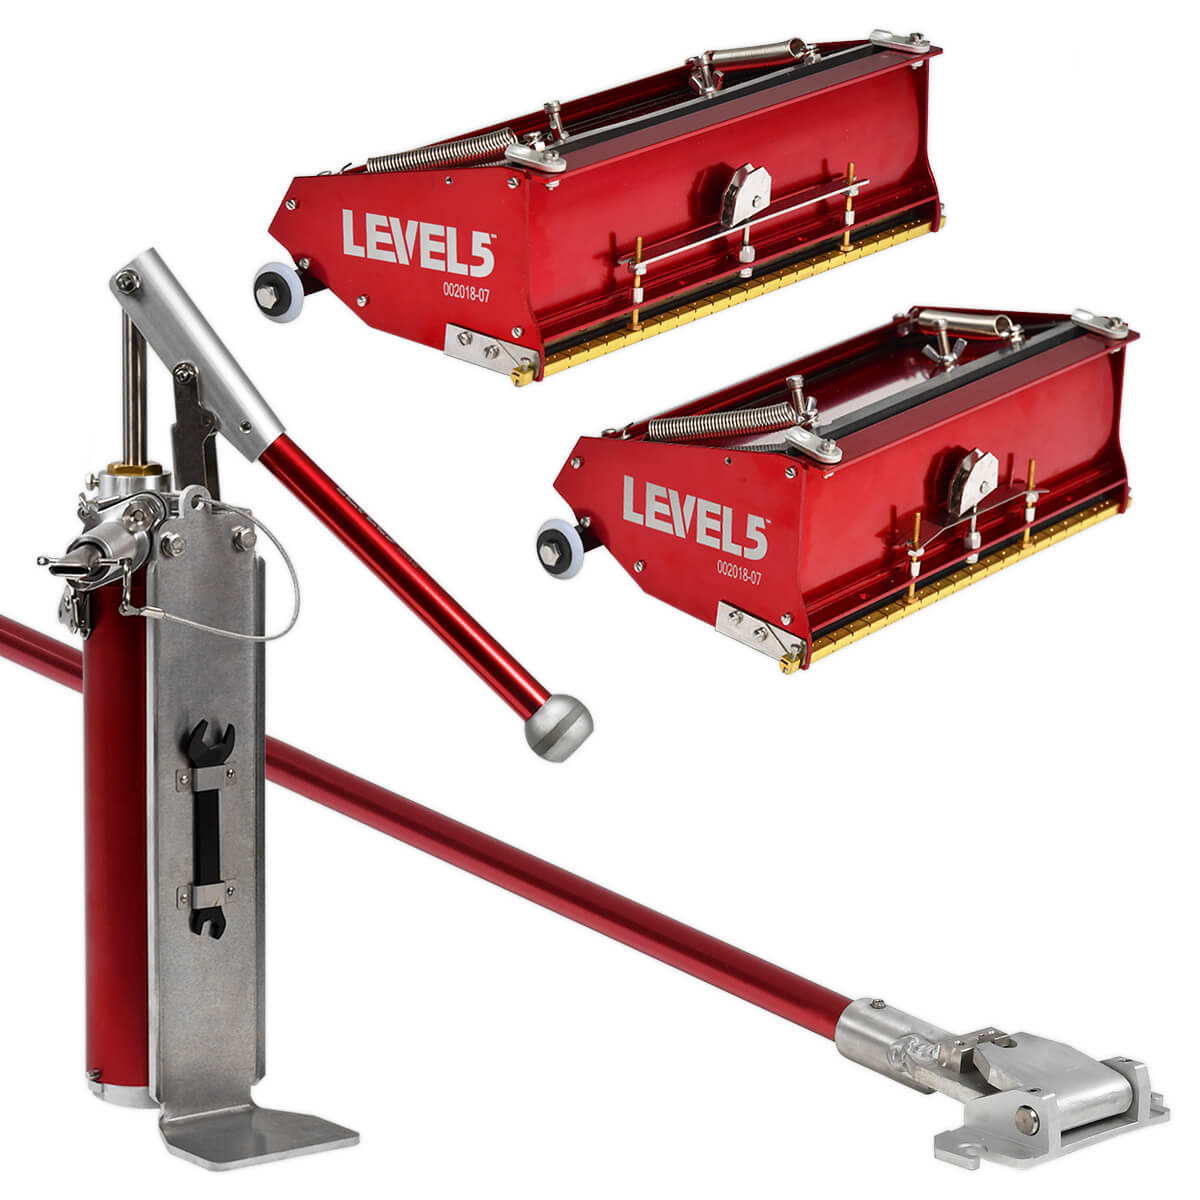 LEVEL5 10/12-Inch Drywall Flat Box Set + Handle & Pump | 4-604